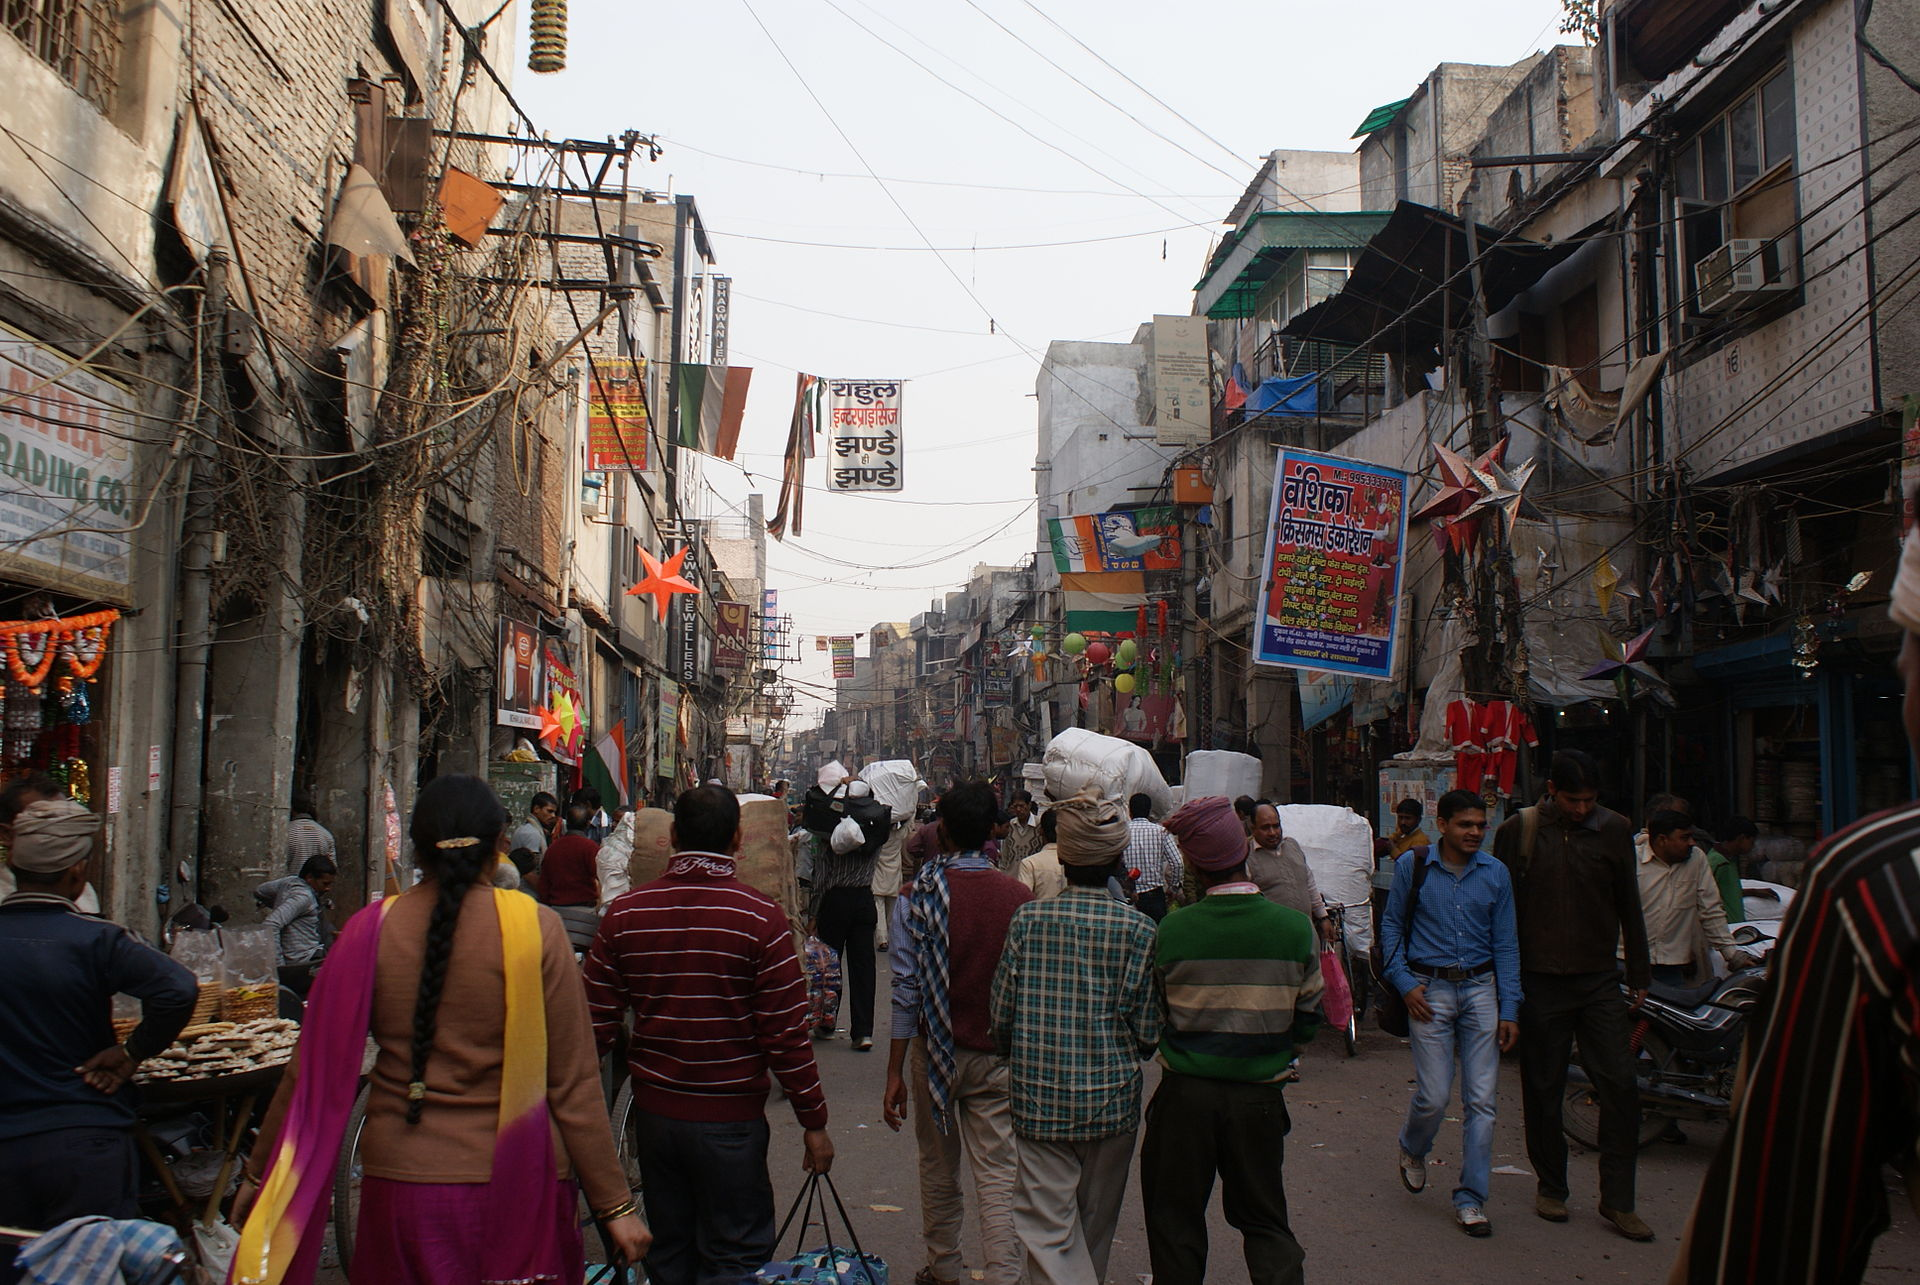 The lanes of Sadar Bazaar. Credit: Wikimedia Commons